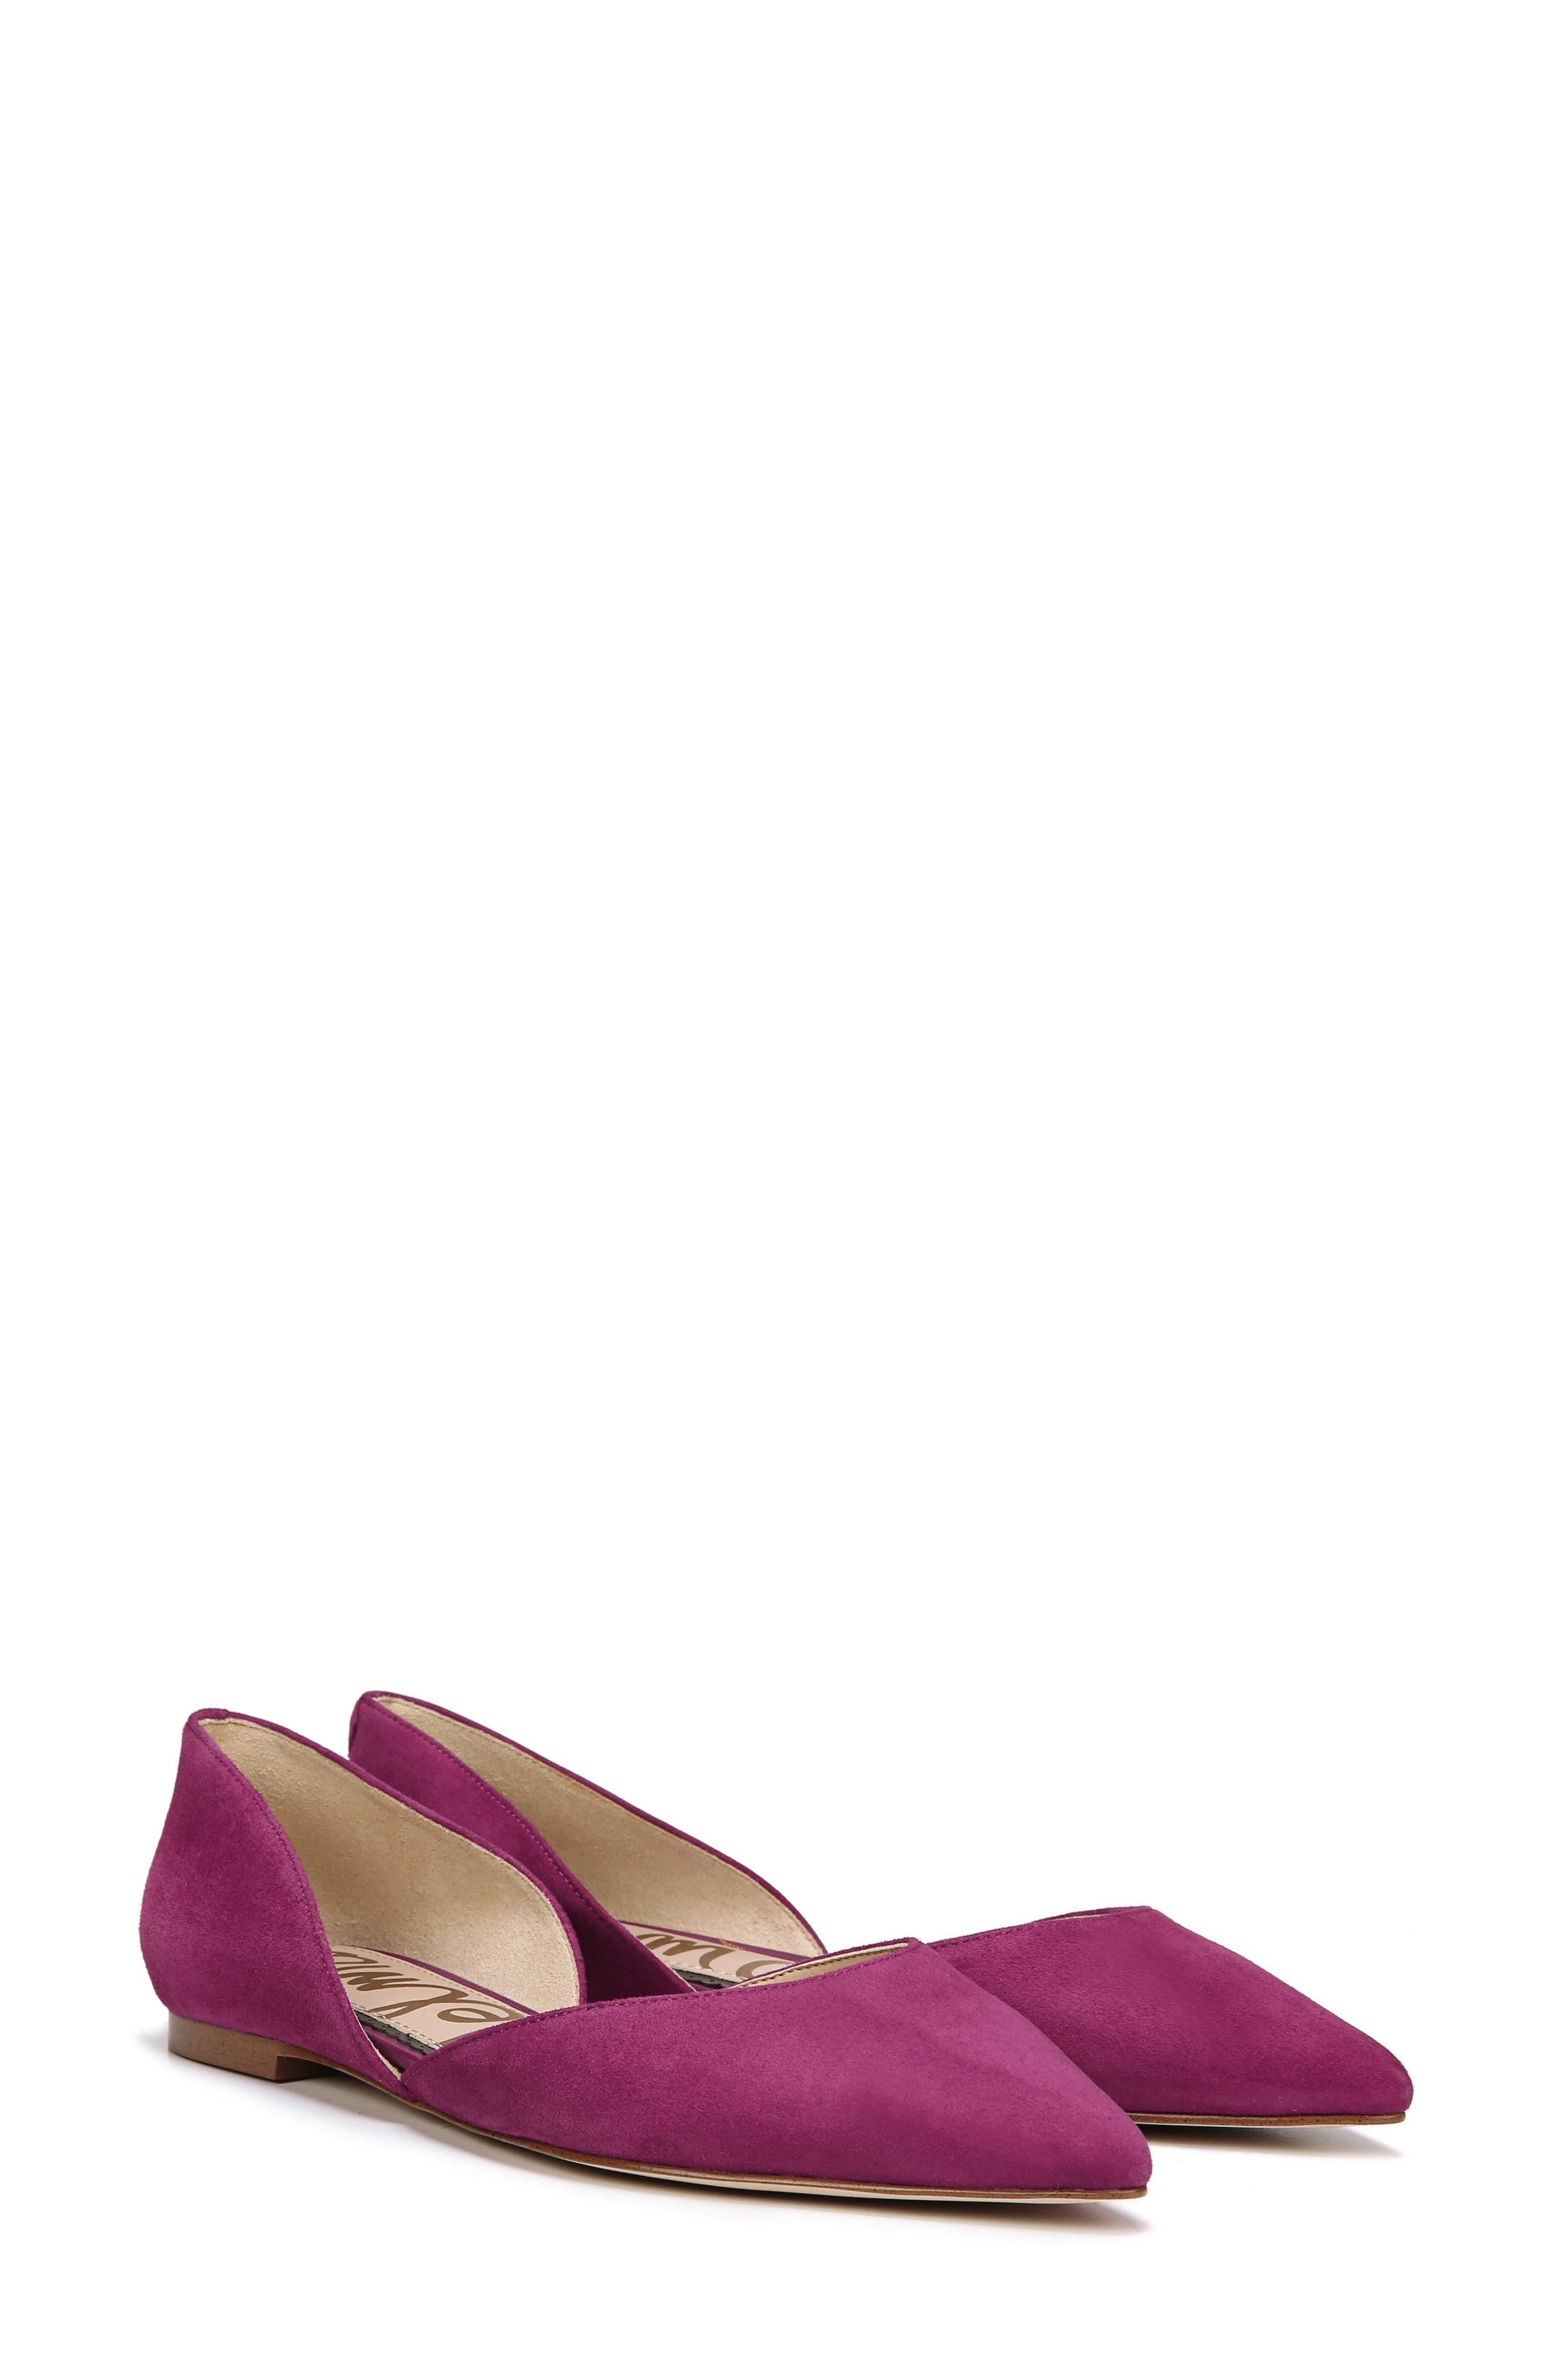 Rodney Pointy Toe d'Orsay Flat,                             Alternate thumbnail 7, color,                             PURPLE PLUM SUEDE